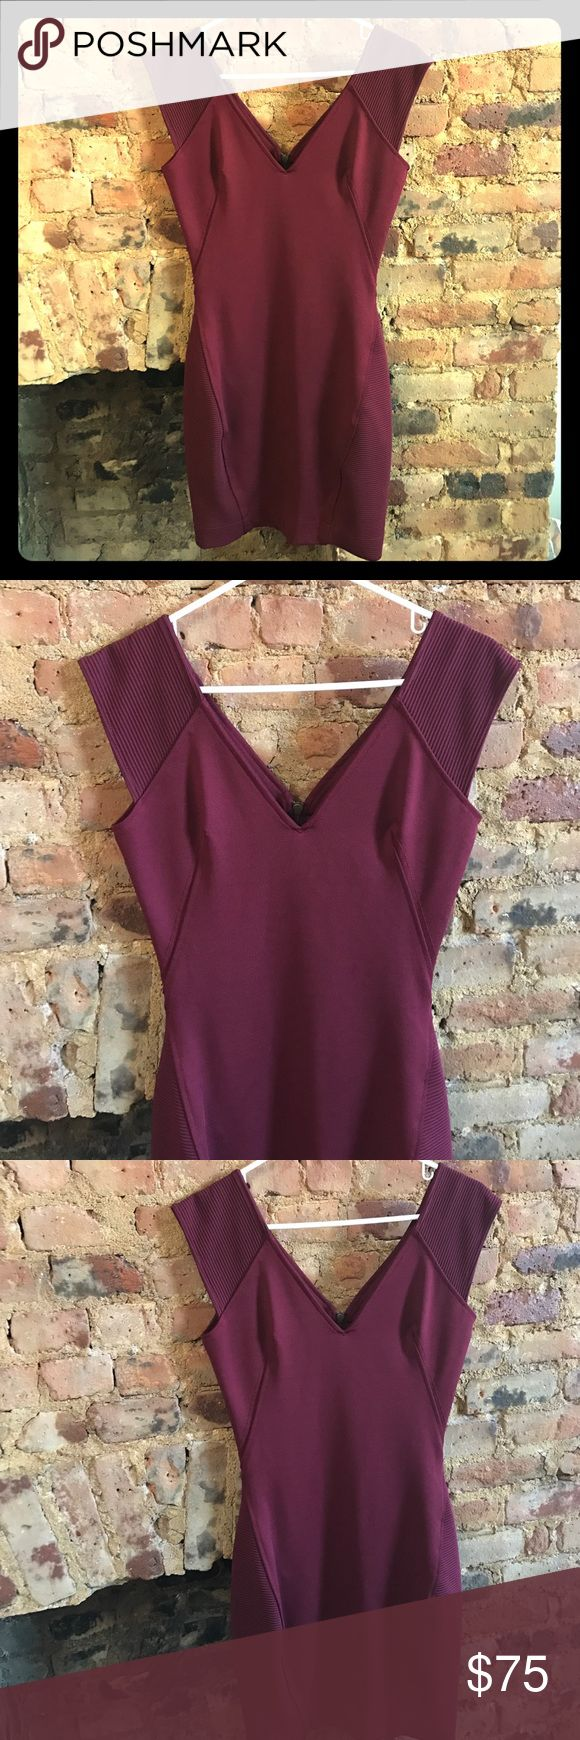 French Connection Wine Bodycon Dress In excellent condition. Maroon/wine-colored bodycon dress. Structured to create flattering silhouette. Ribbed detail at the shoulders and thighs. Truly beautiful outfit. French Connection Dresses Mini